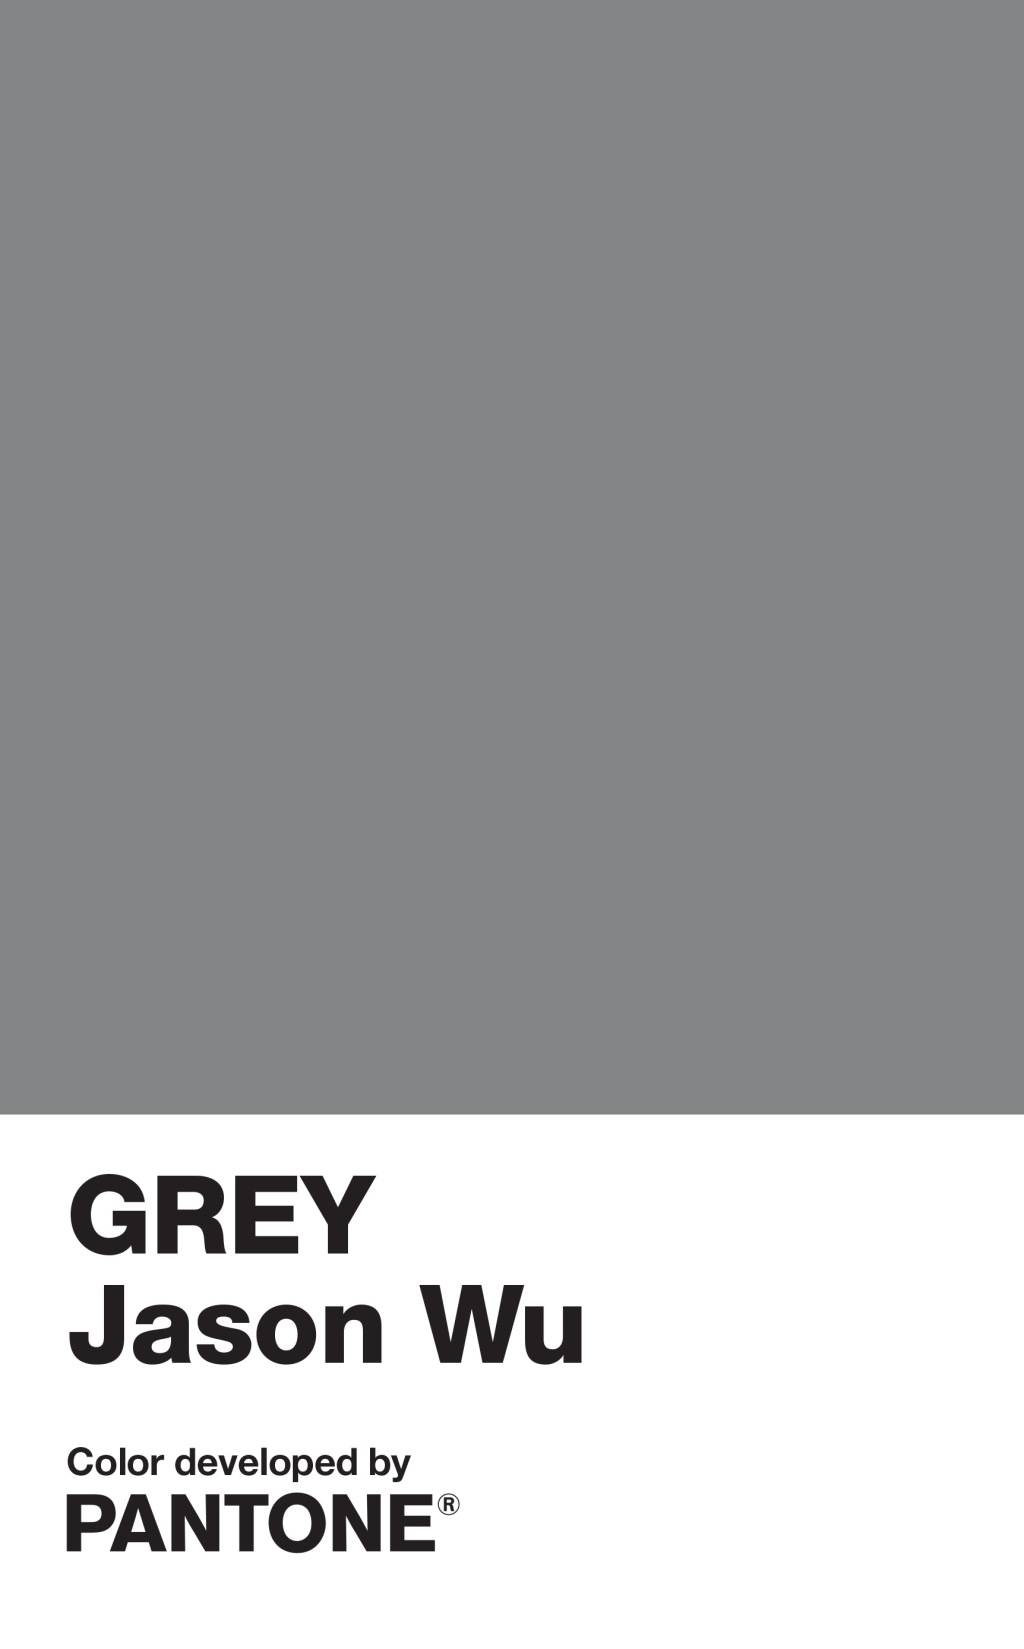 Jason Wu Creates Pantone Color 'Grey Jason Wu'